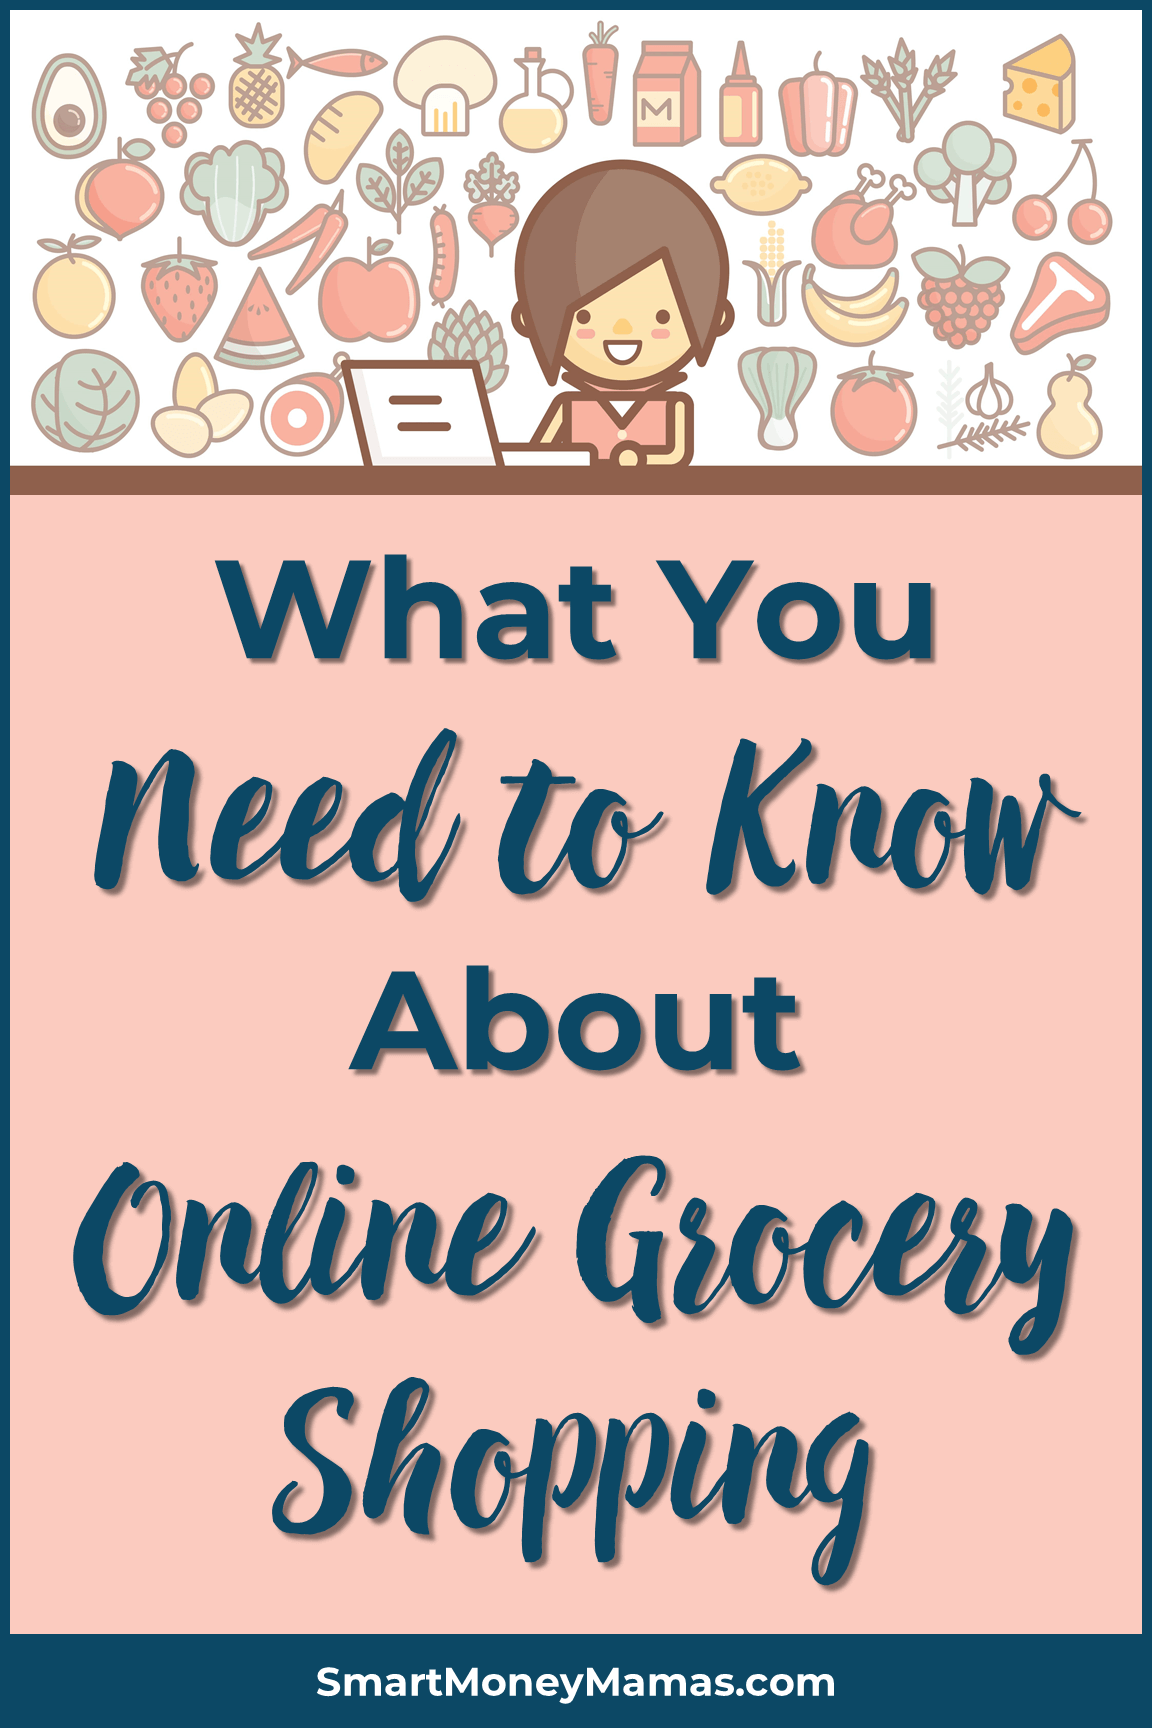 I so want to try this soon! I hate going to the grocery store with the kids and this has a lot of good tips for doing it in a way that actually saves you money! #mealplanning #grocerybudget #onlinegroceryshopping #savemoney